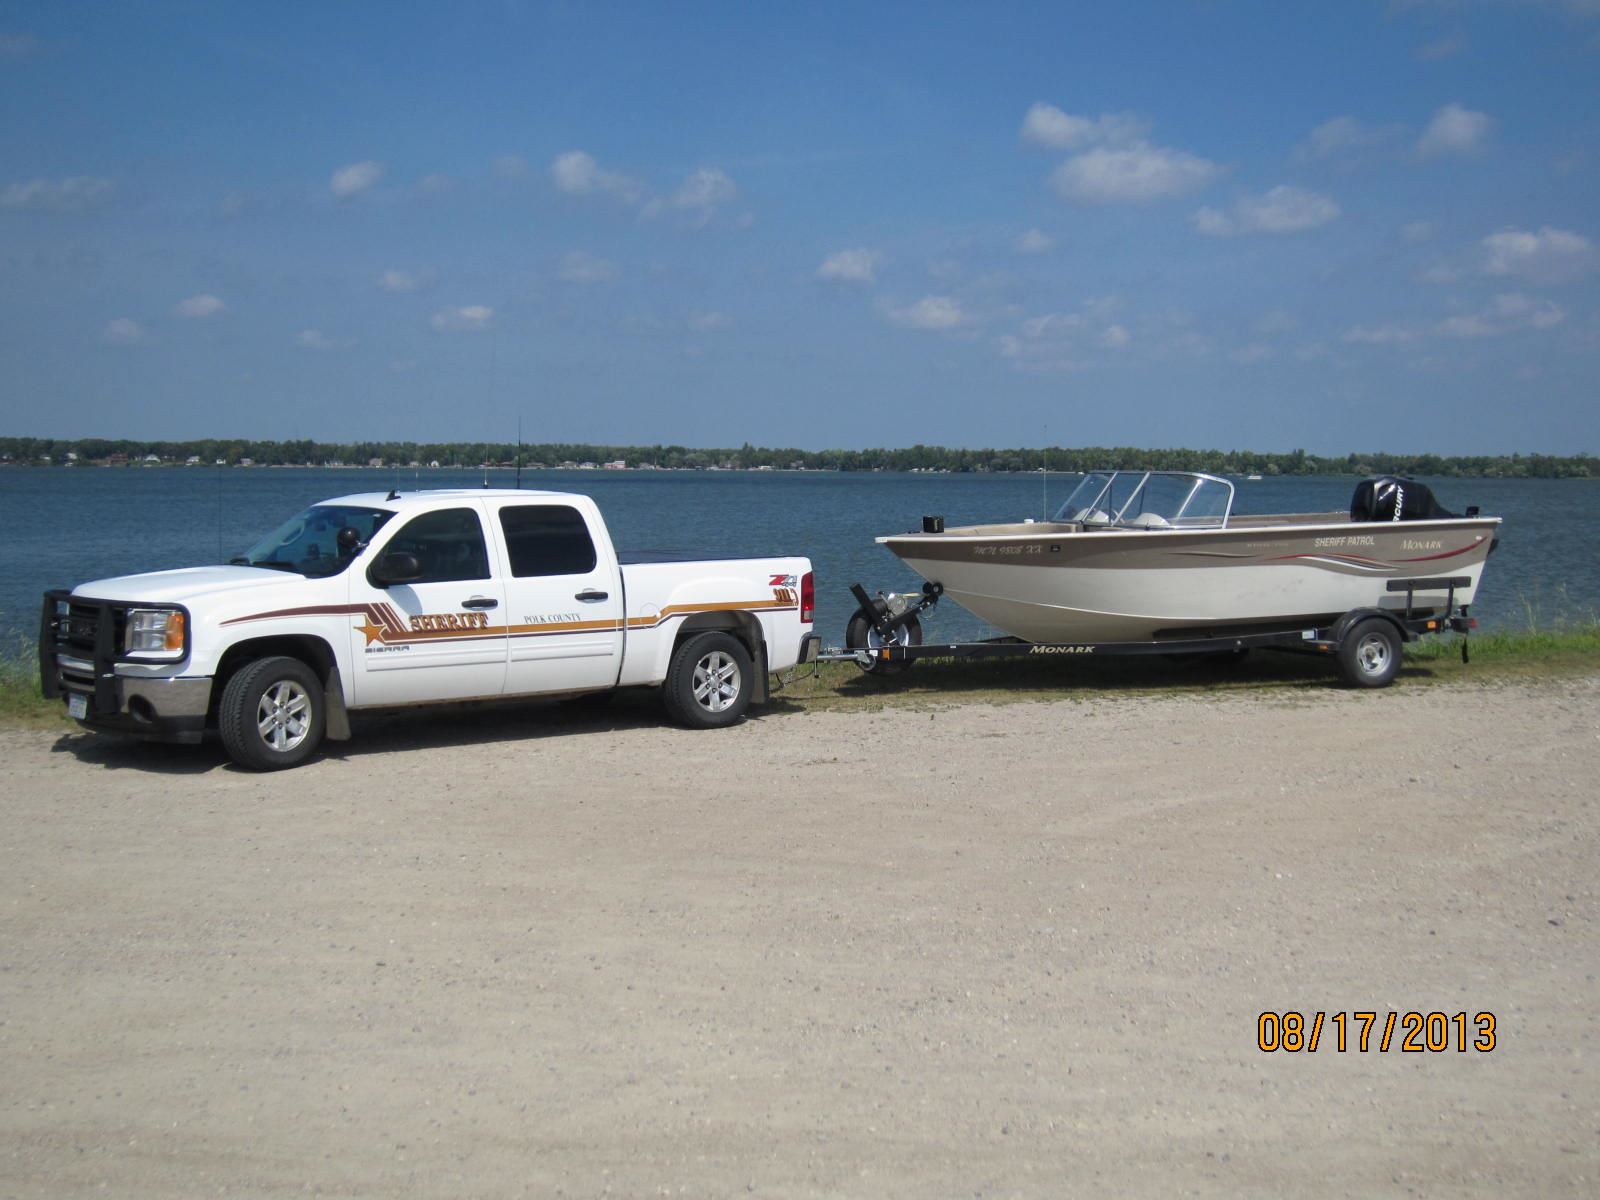 Monarch Boat pulled by Sheriff Truck